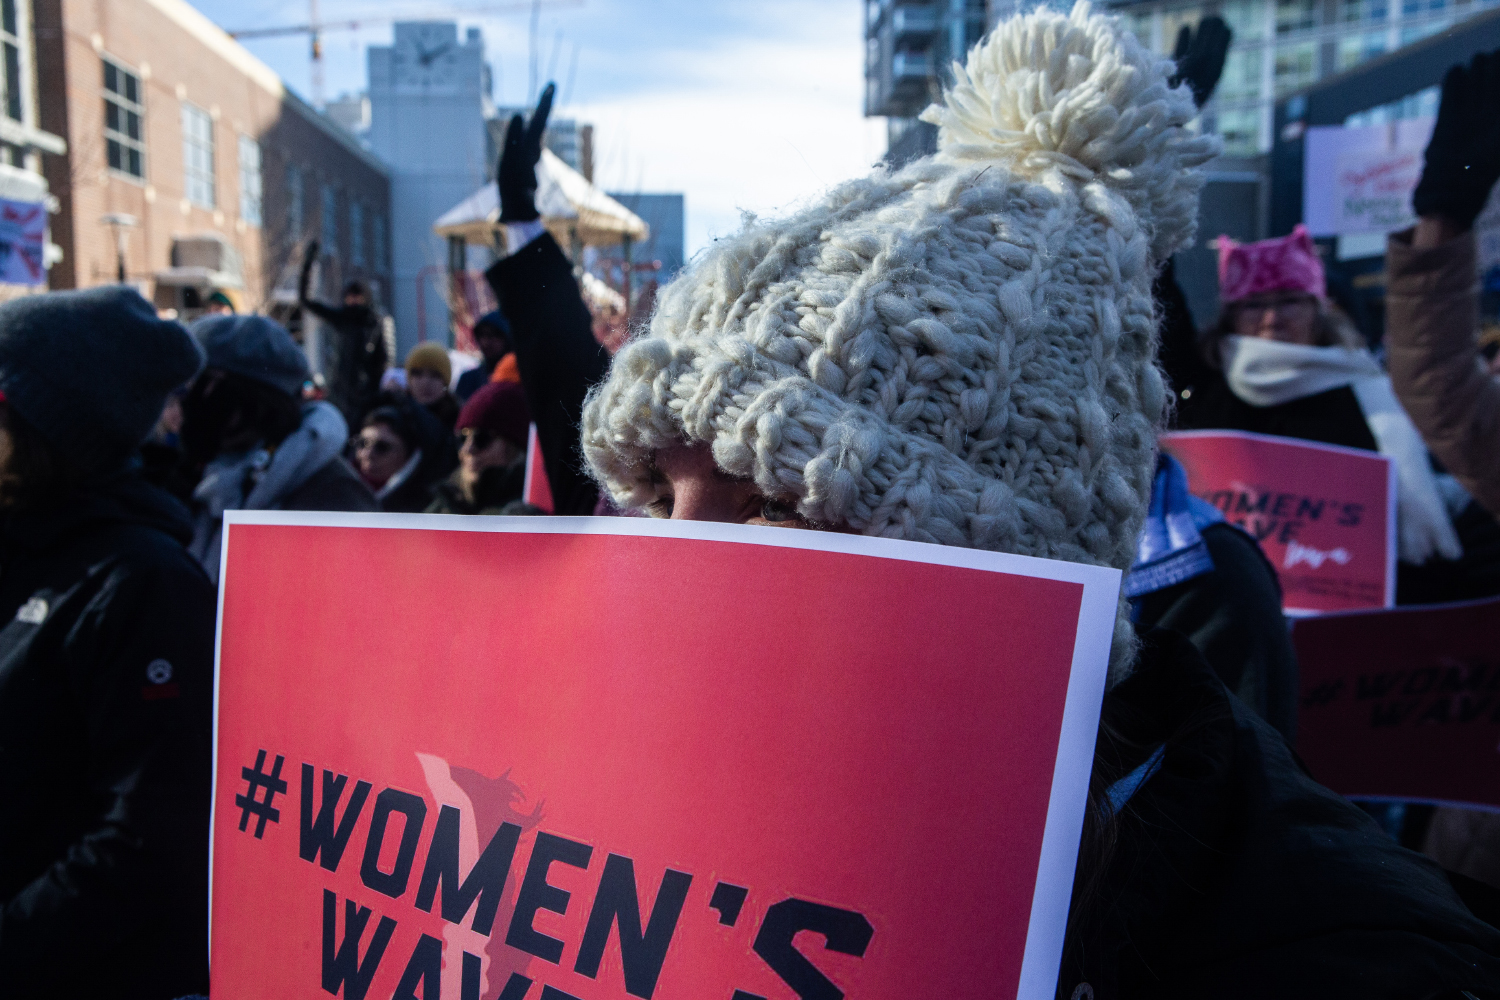 An attendee listens to a speech during the Women's March in Iowa City on Saturday, January 19, 2019. The Women's March is an annual event that started in 2017 following the inauguration of President Donald Trump. The march advocates for a range of issues including women's rights,  healthcare reform, LGBTQ+ rights, and environmental issues.